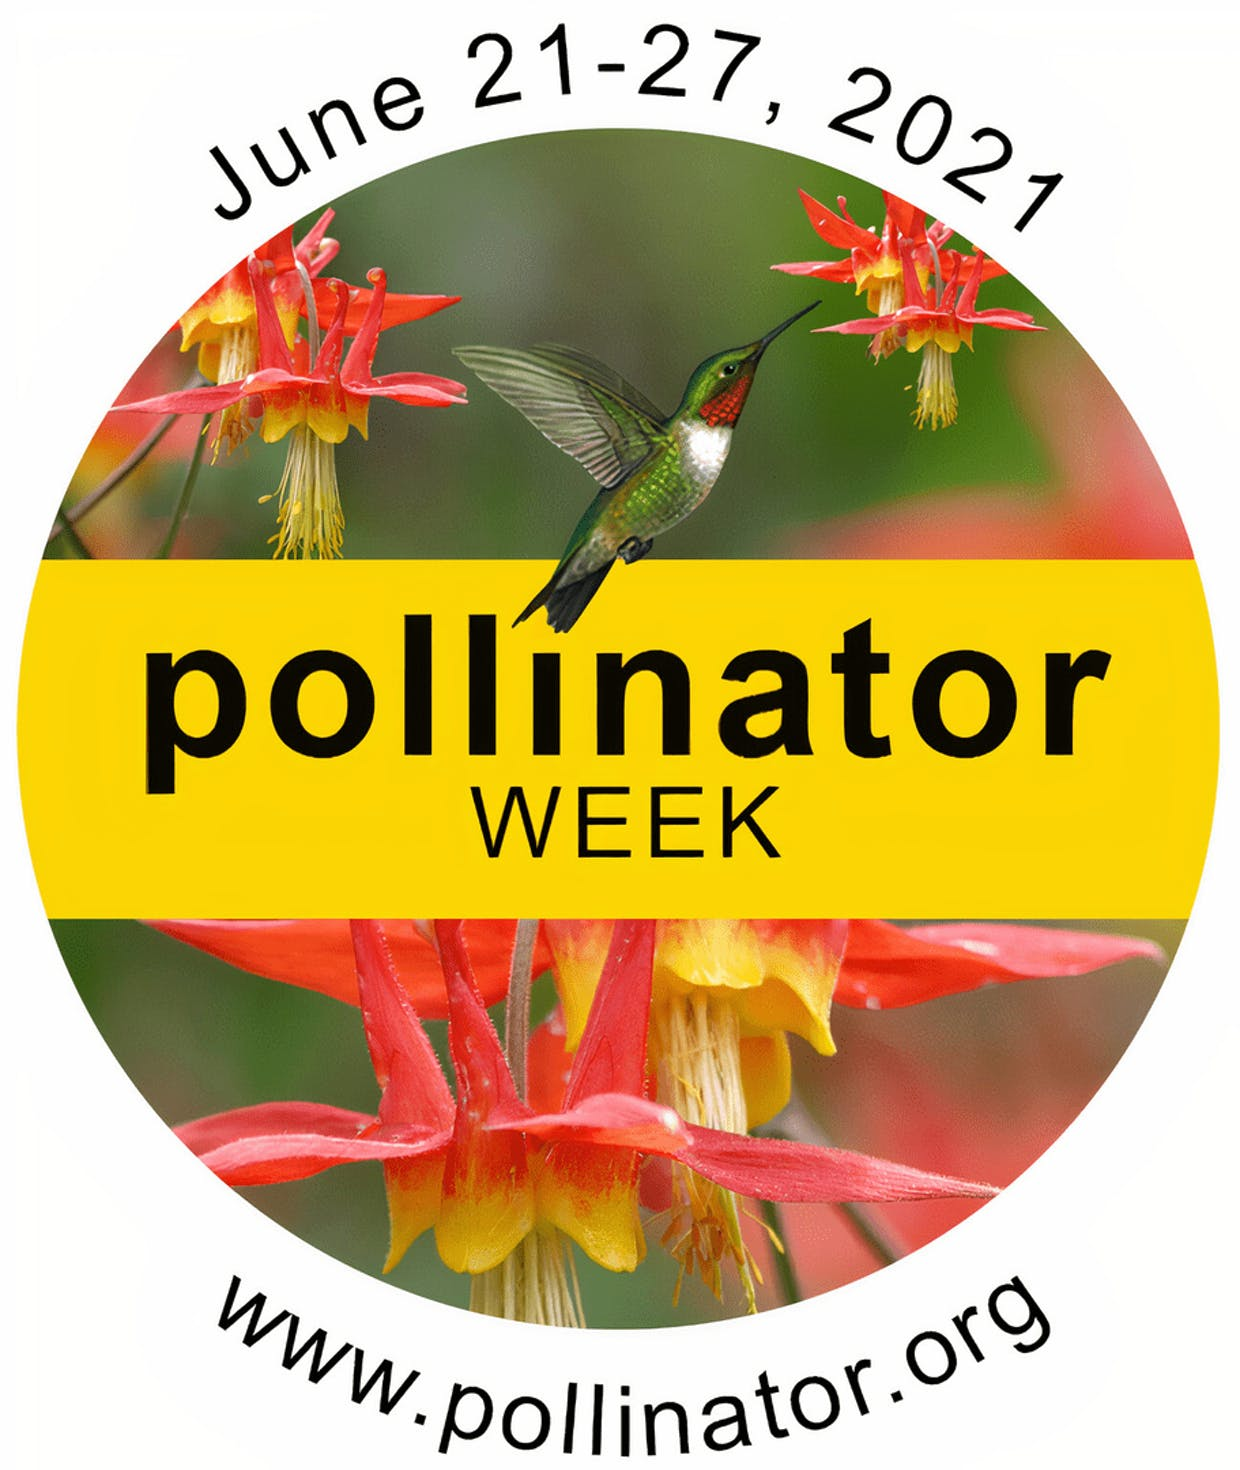 This week we celebrate pollinators, essential partners to our Nation's food system.